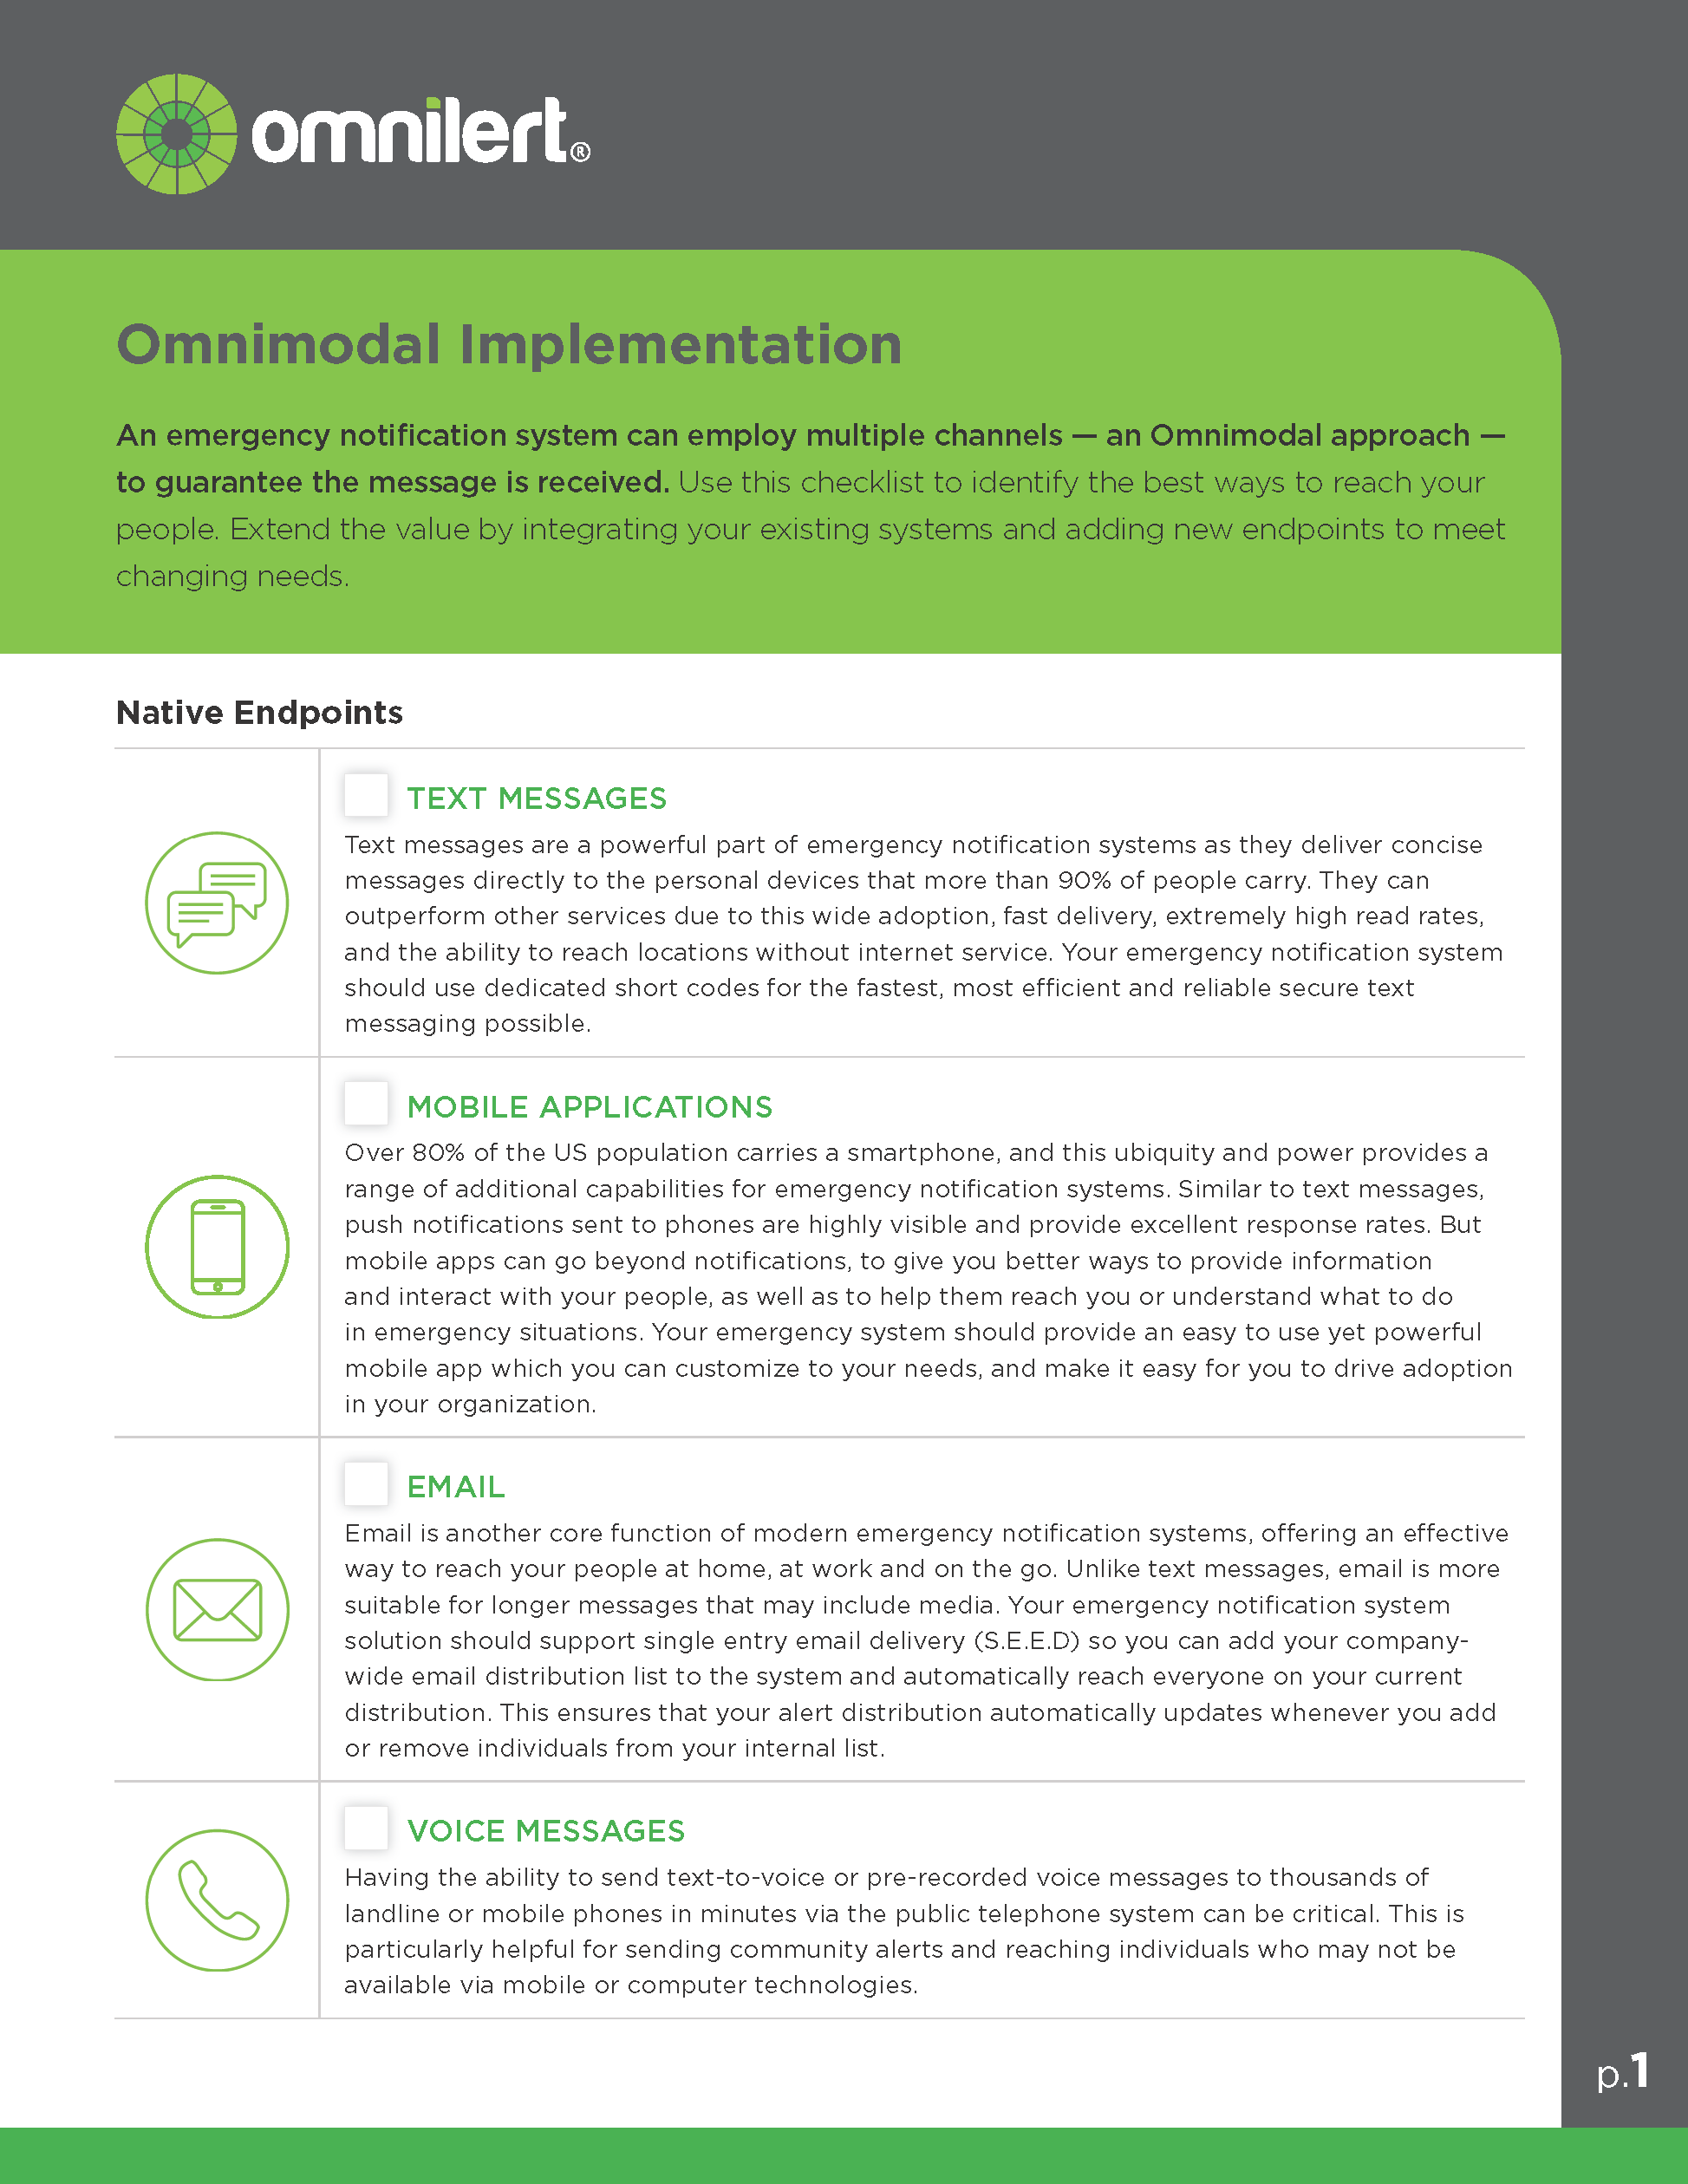 212x274 Cover image - Checklist - Omnimodal Implementation.png